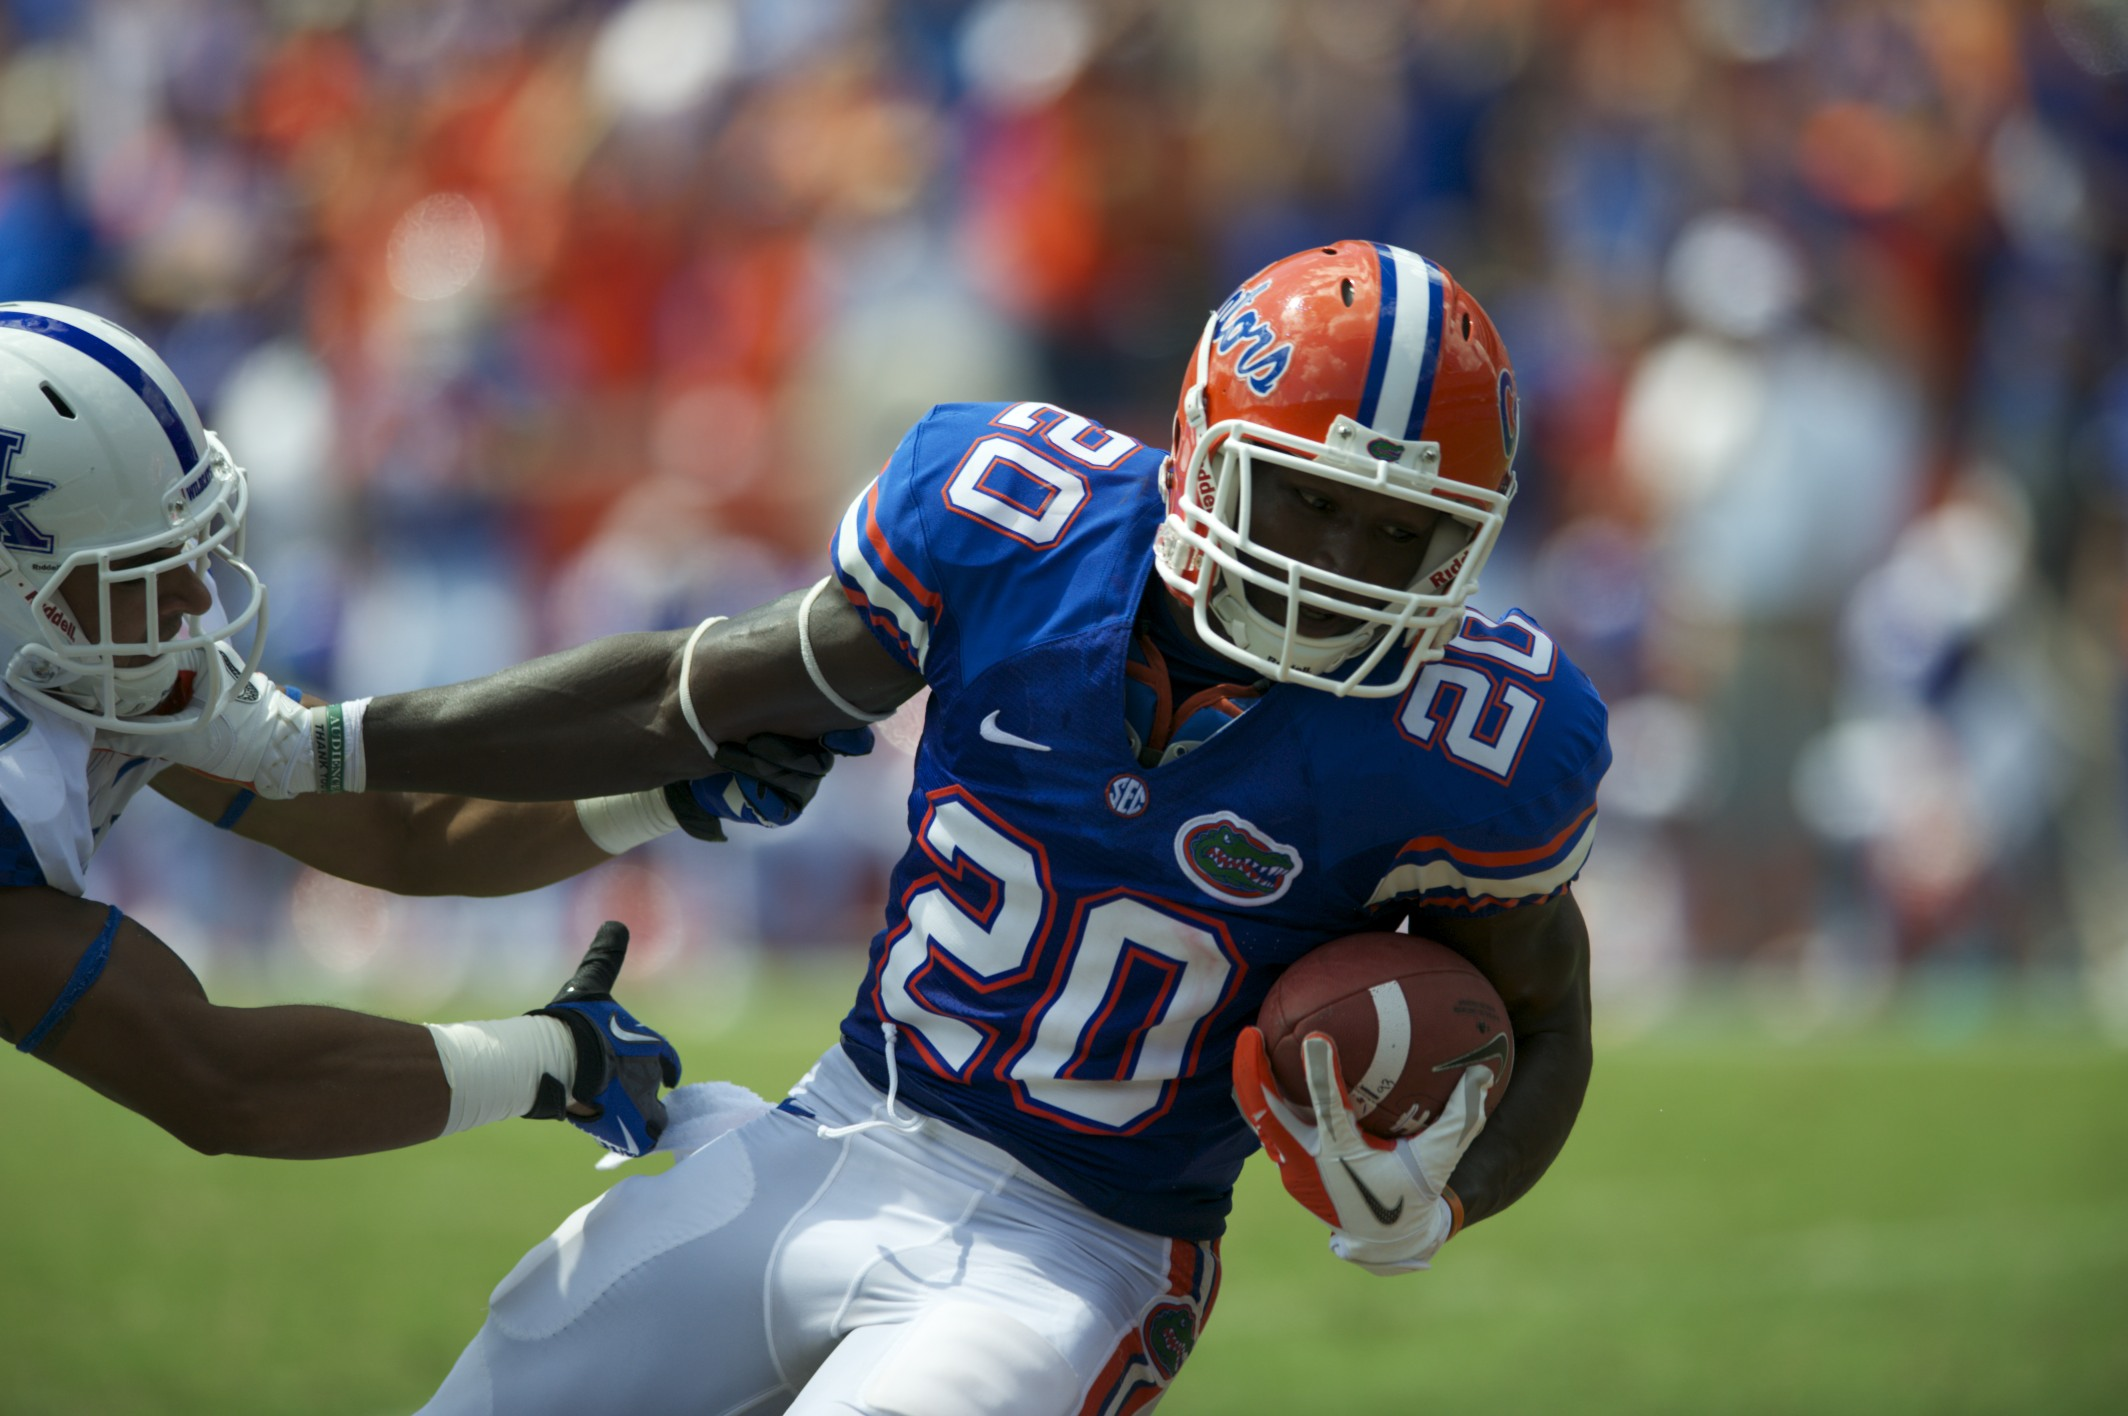 Tight end Marcus Maye gets tackled after getting positive yards for the Gators in the first half.